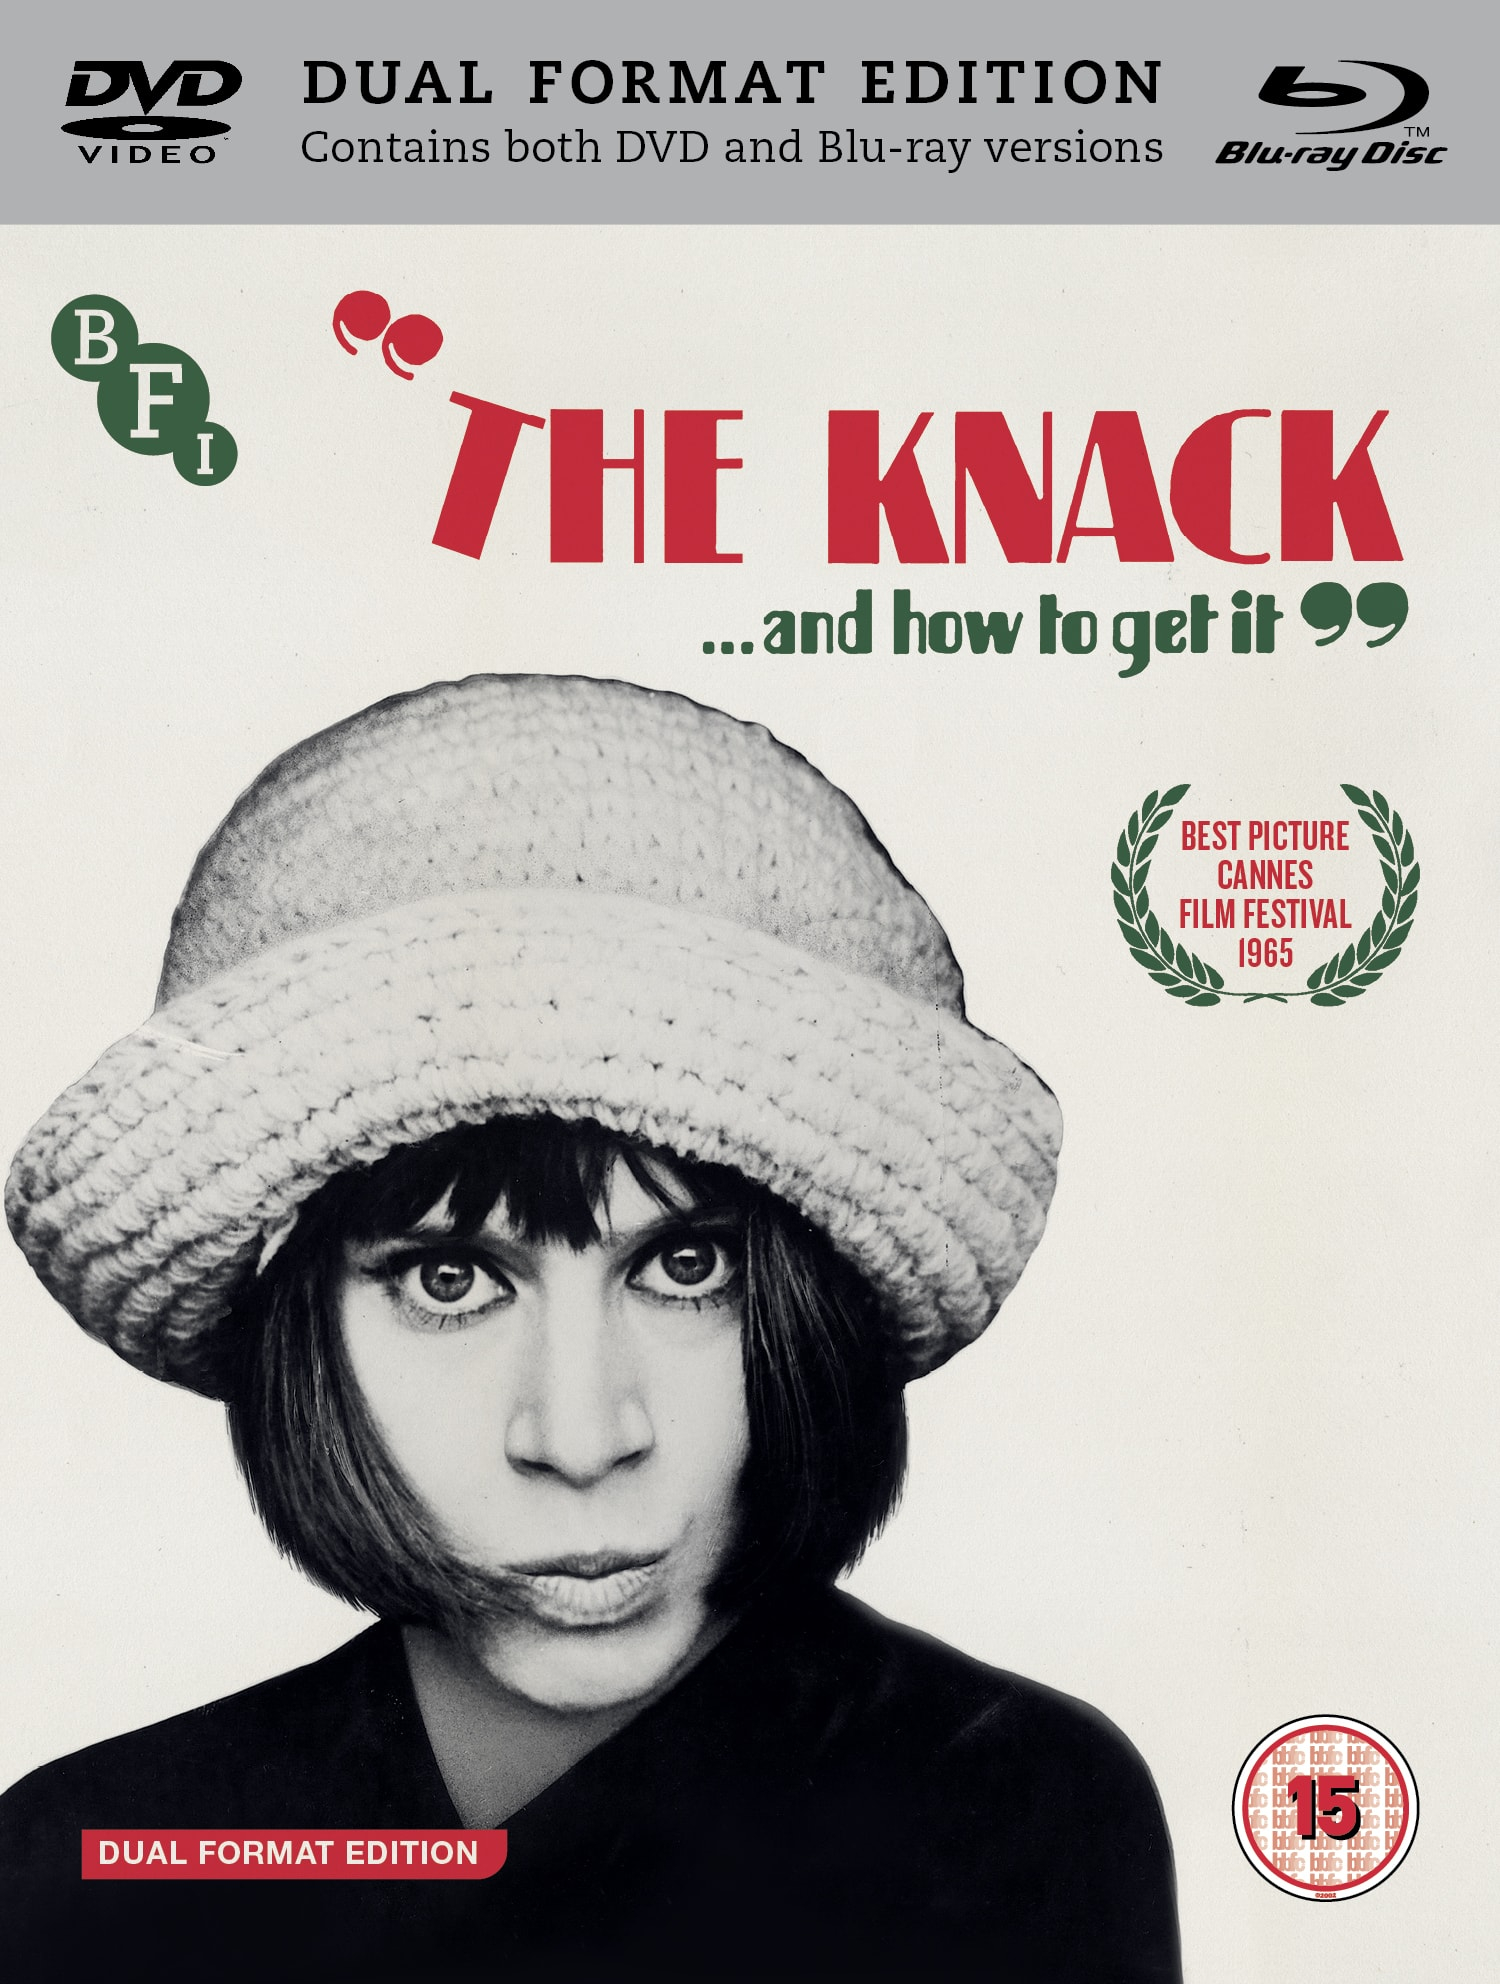 Buy PRE-ORDER The Knack...and how to get it (Dual Format Edition)